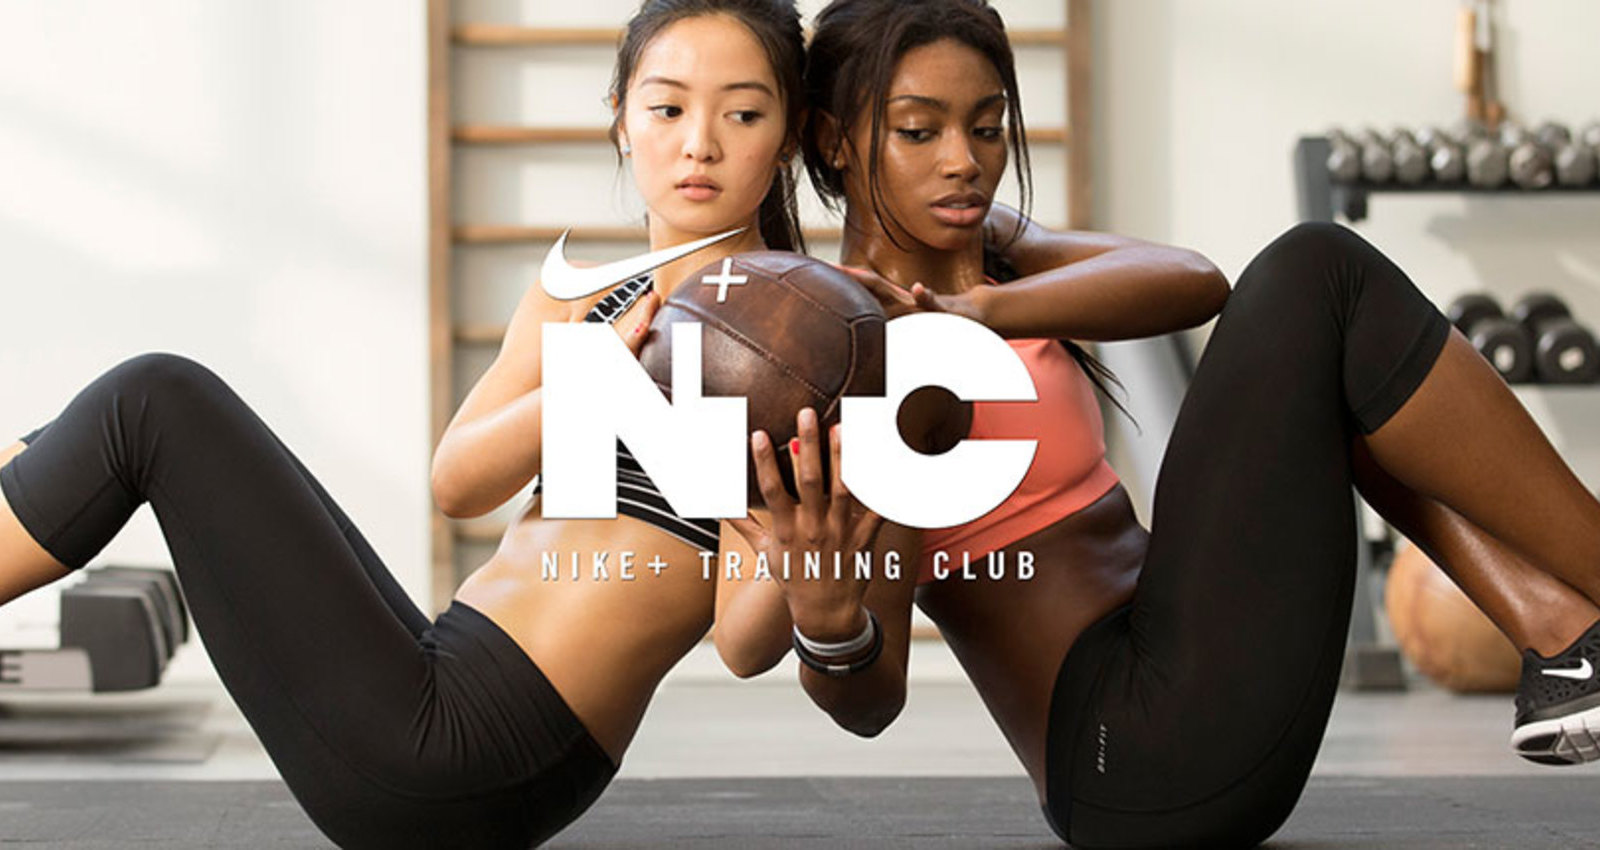 Nike+ Training Club app